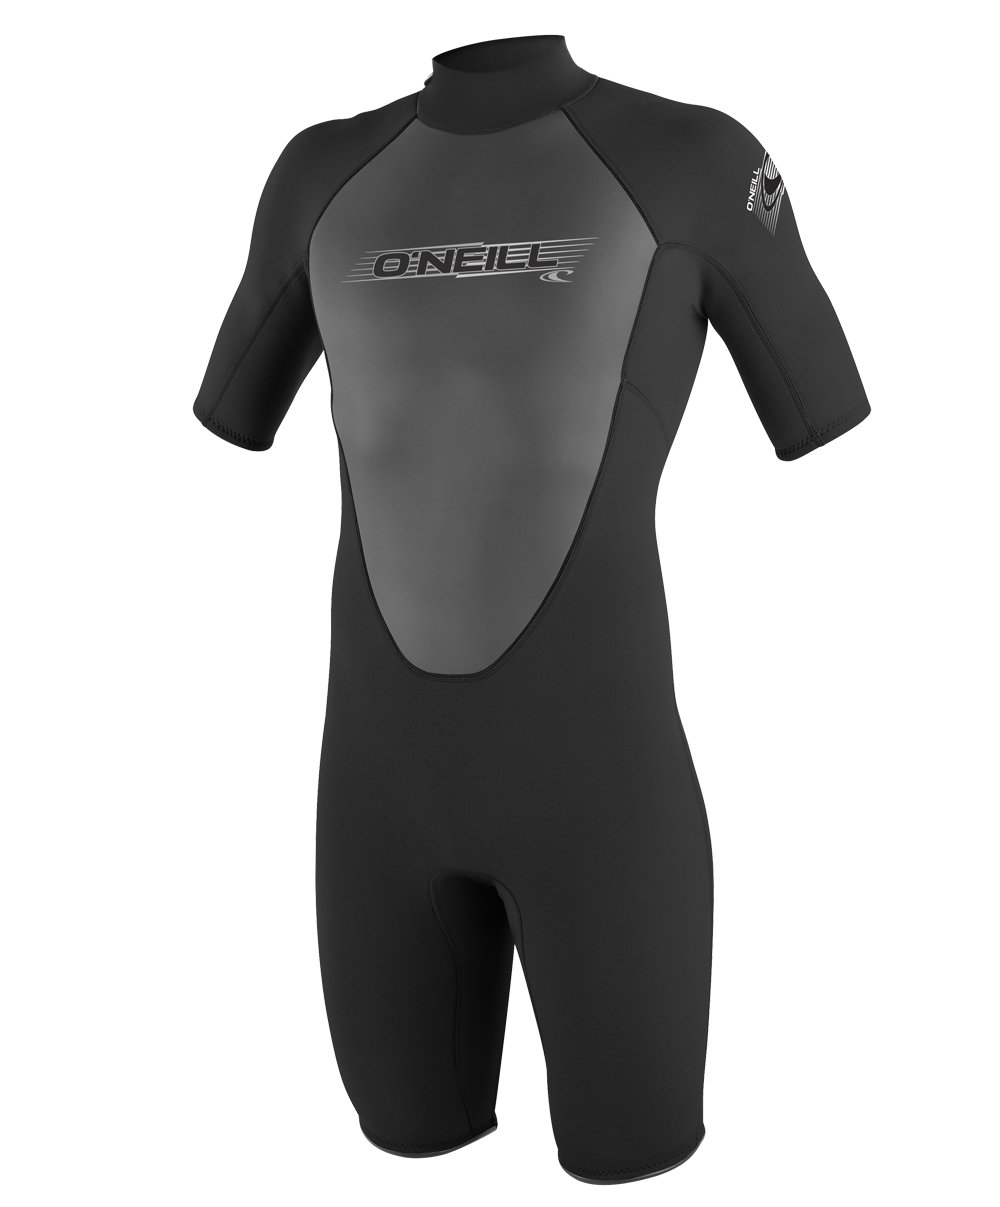 Amazon.com : O'Neill Men's Reactor 2mm Back Zip Spring Wetsuit : Sports &  Outdoors